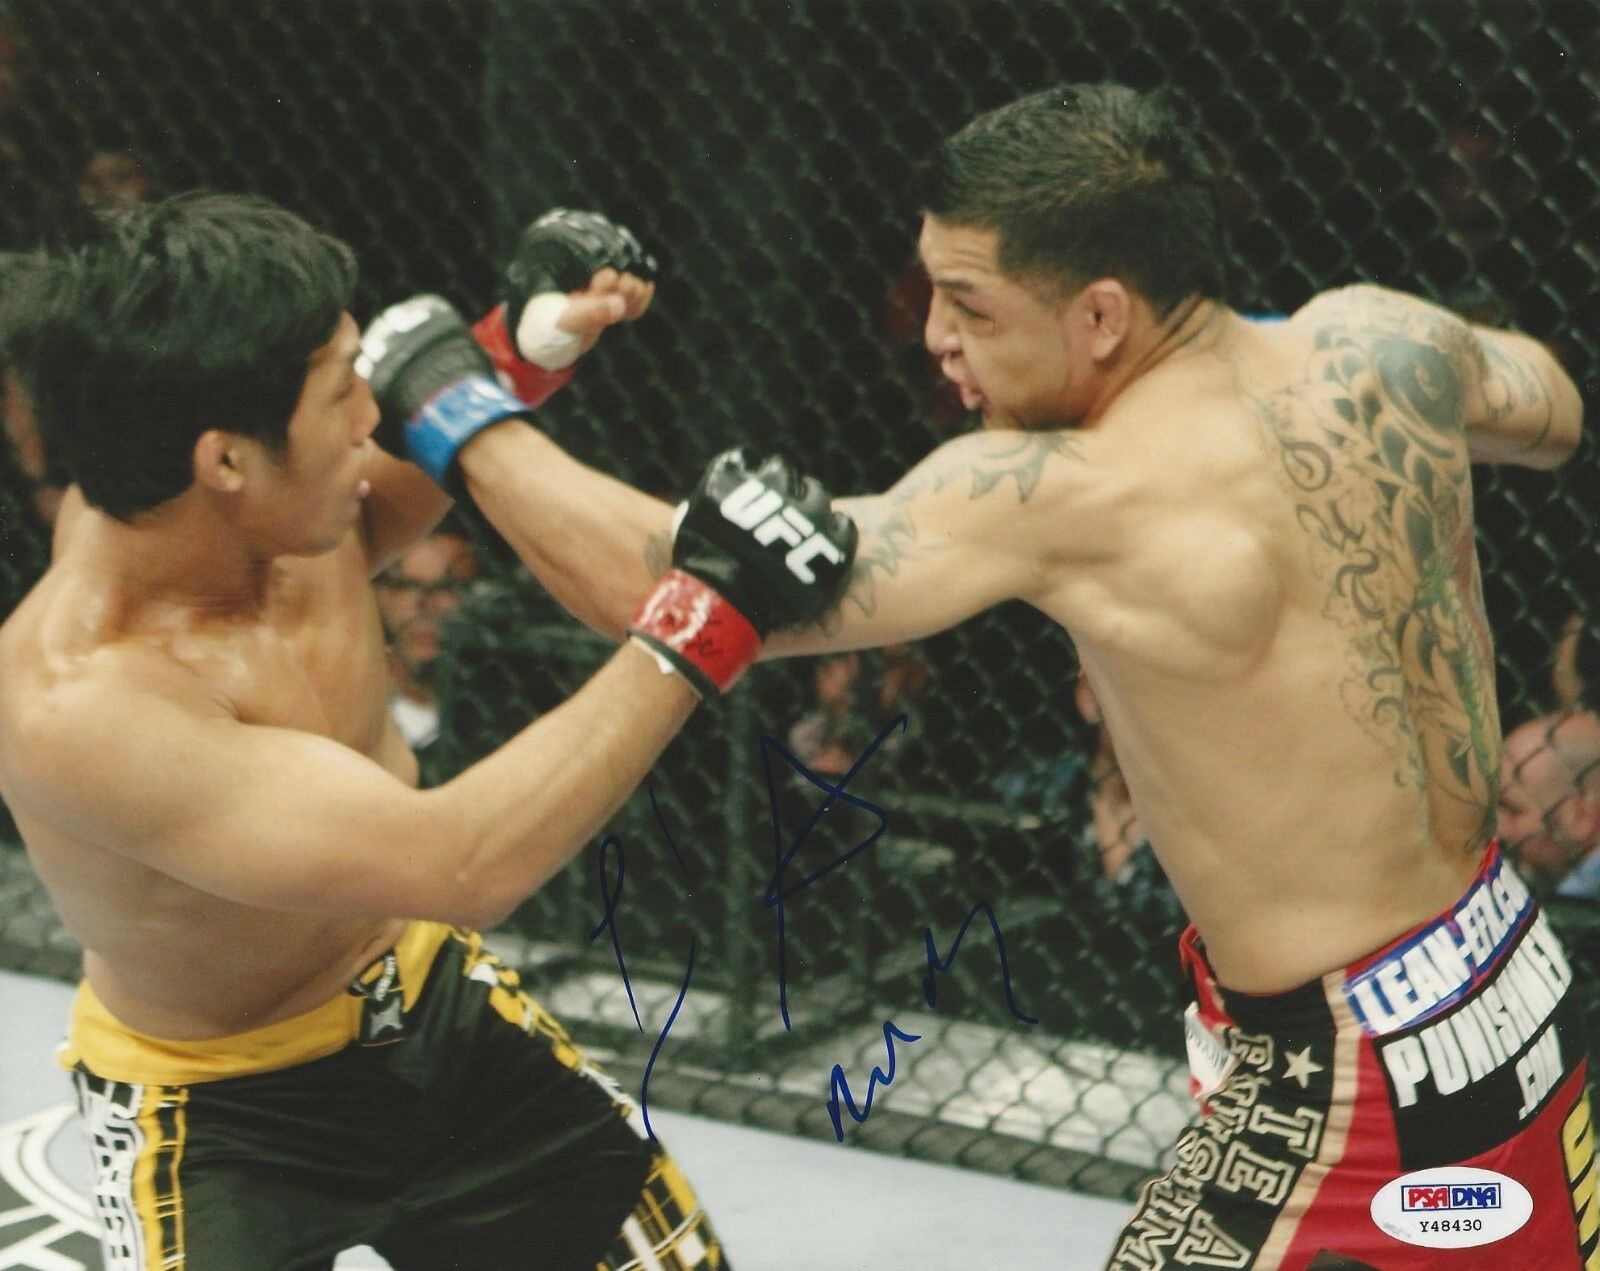 Leonard Garcia UFC Fighter signed 8x10 photo PSA/DNA # Y48430